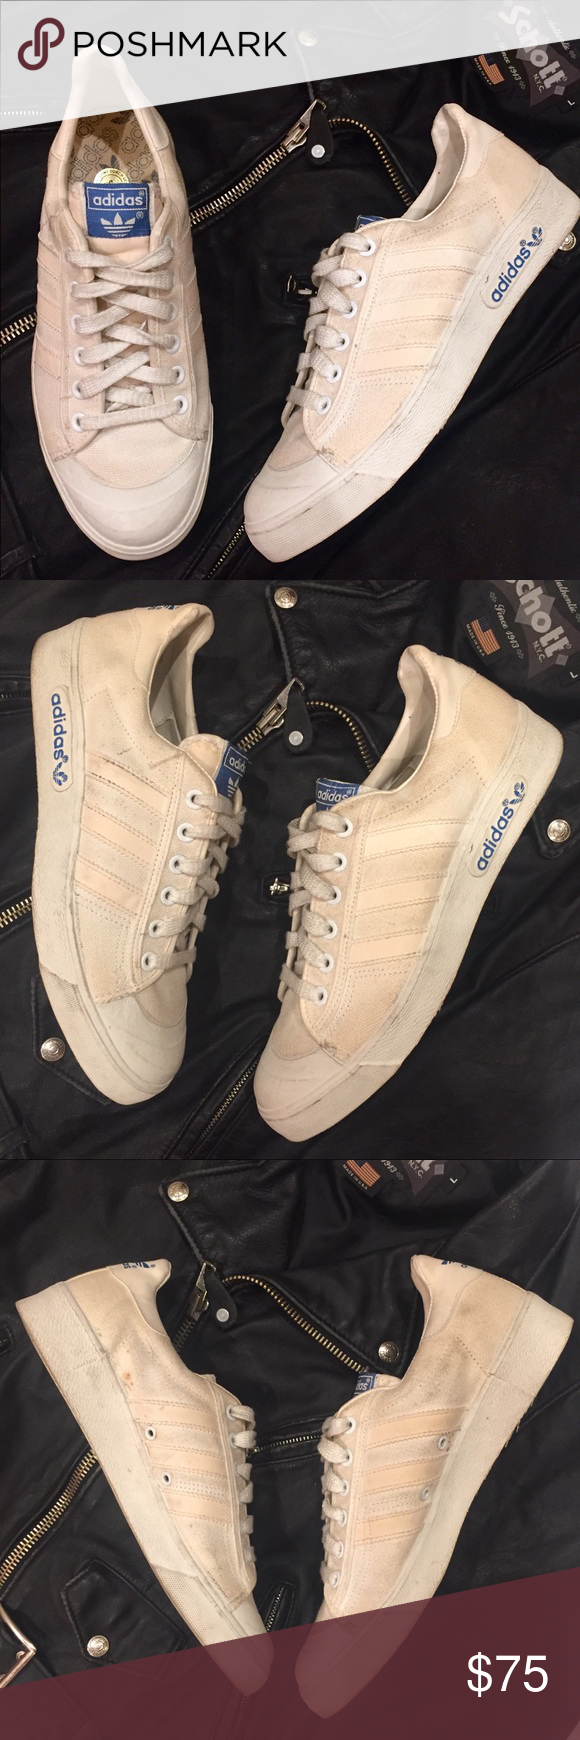 adidas court 70s shoes